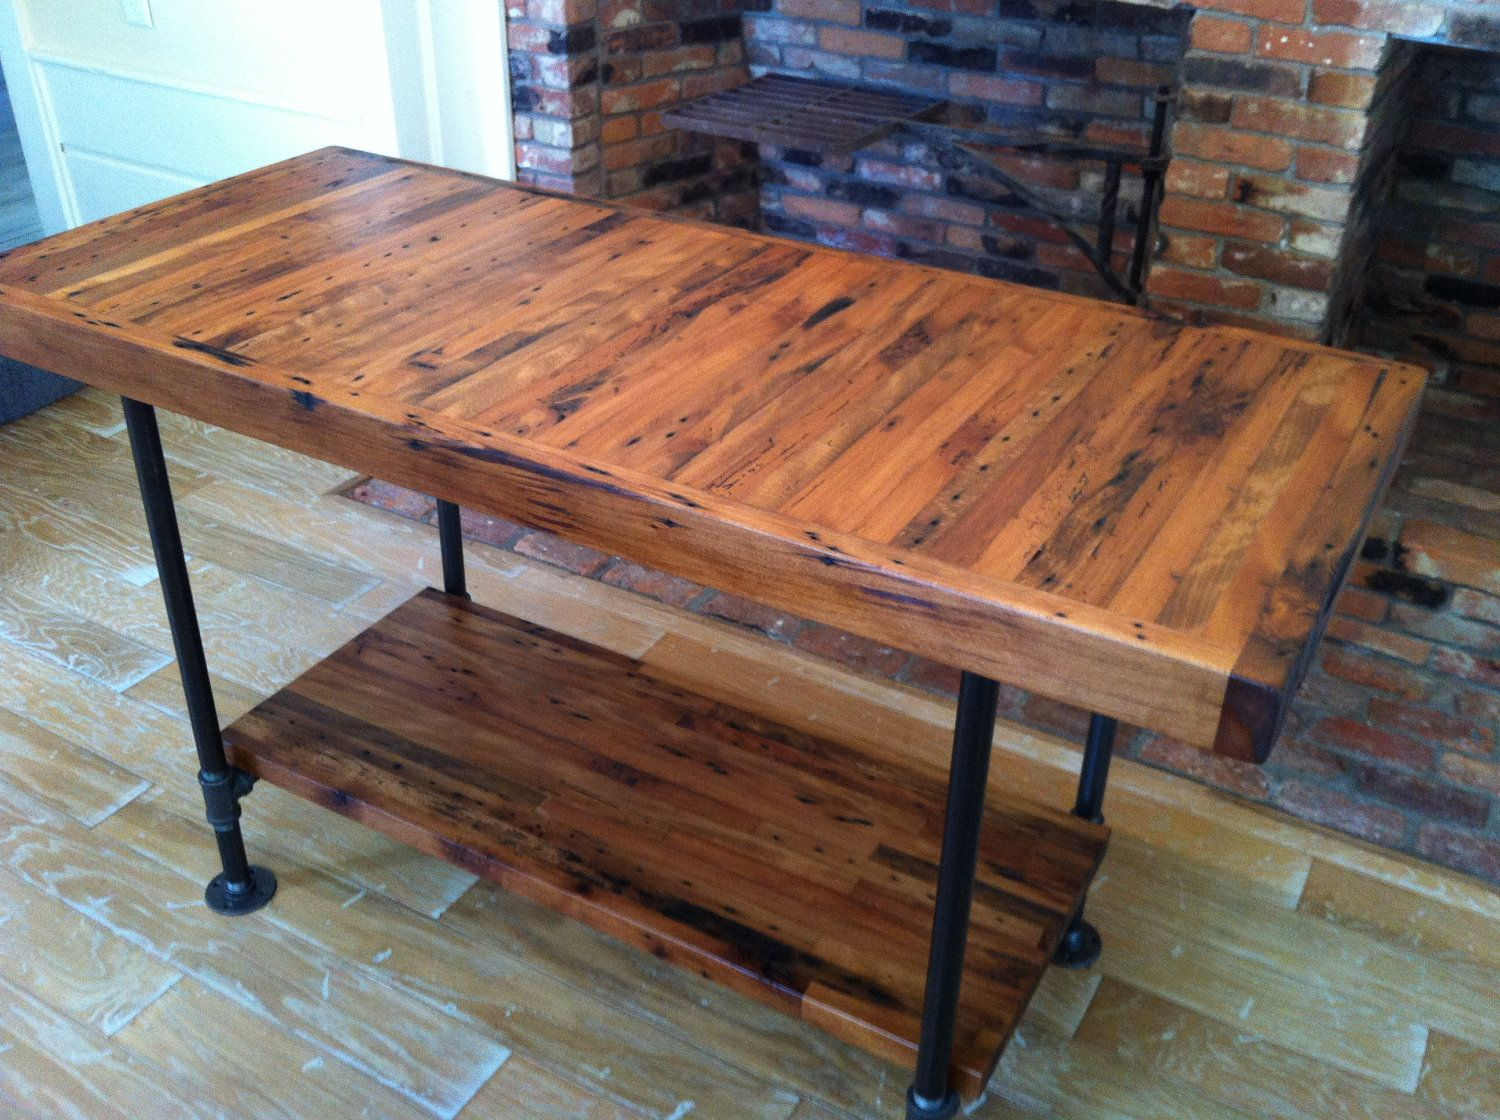 Round butcher block kitchen table - Kitchen Island Industrial Butcher Block Style Reclaimed Wood And The Legs And Frame Are